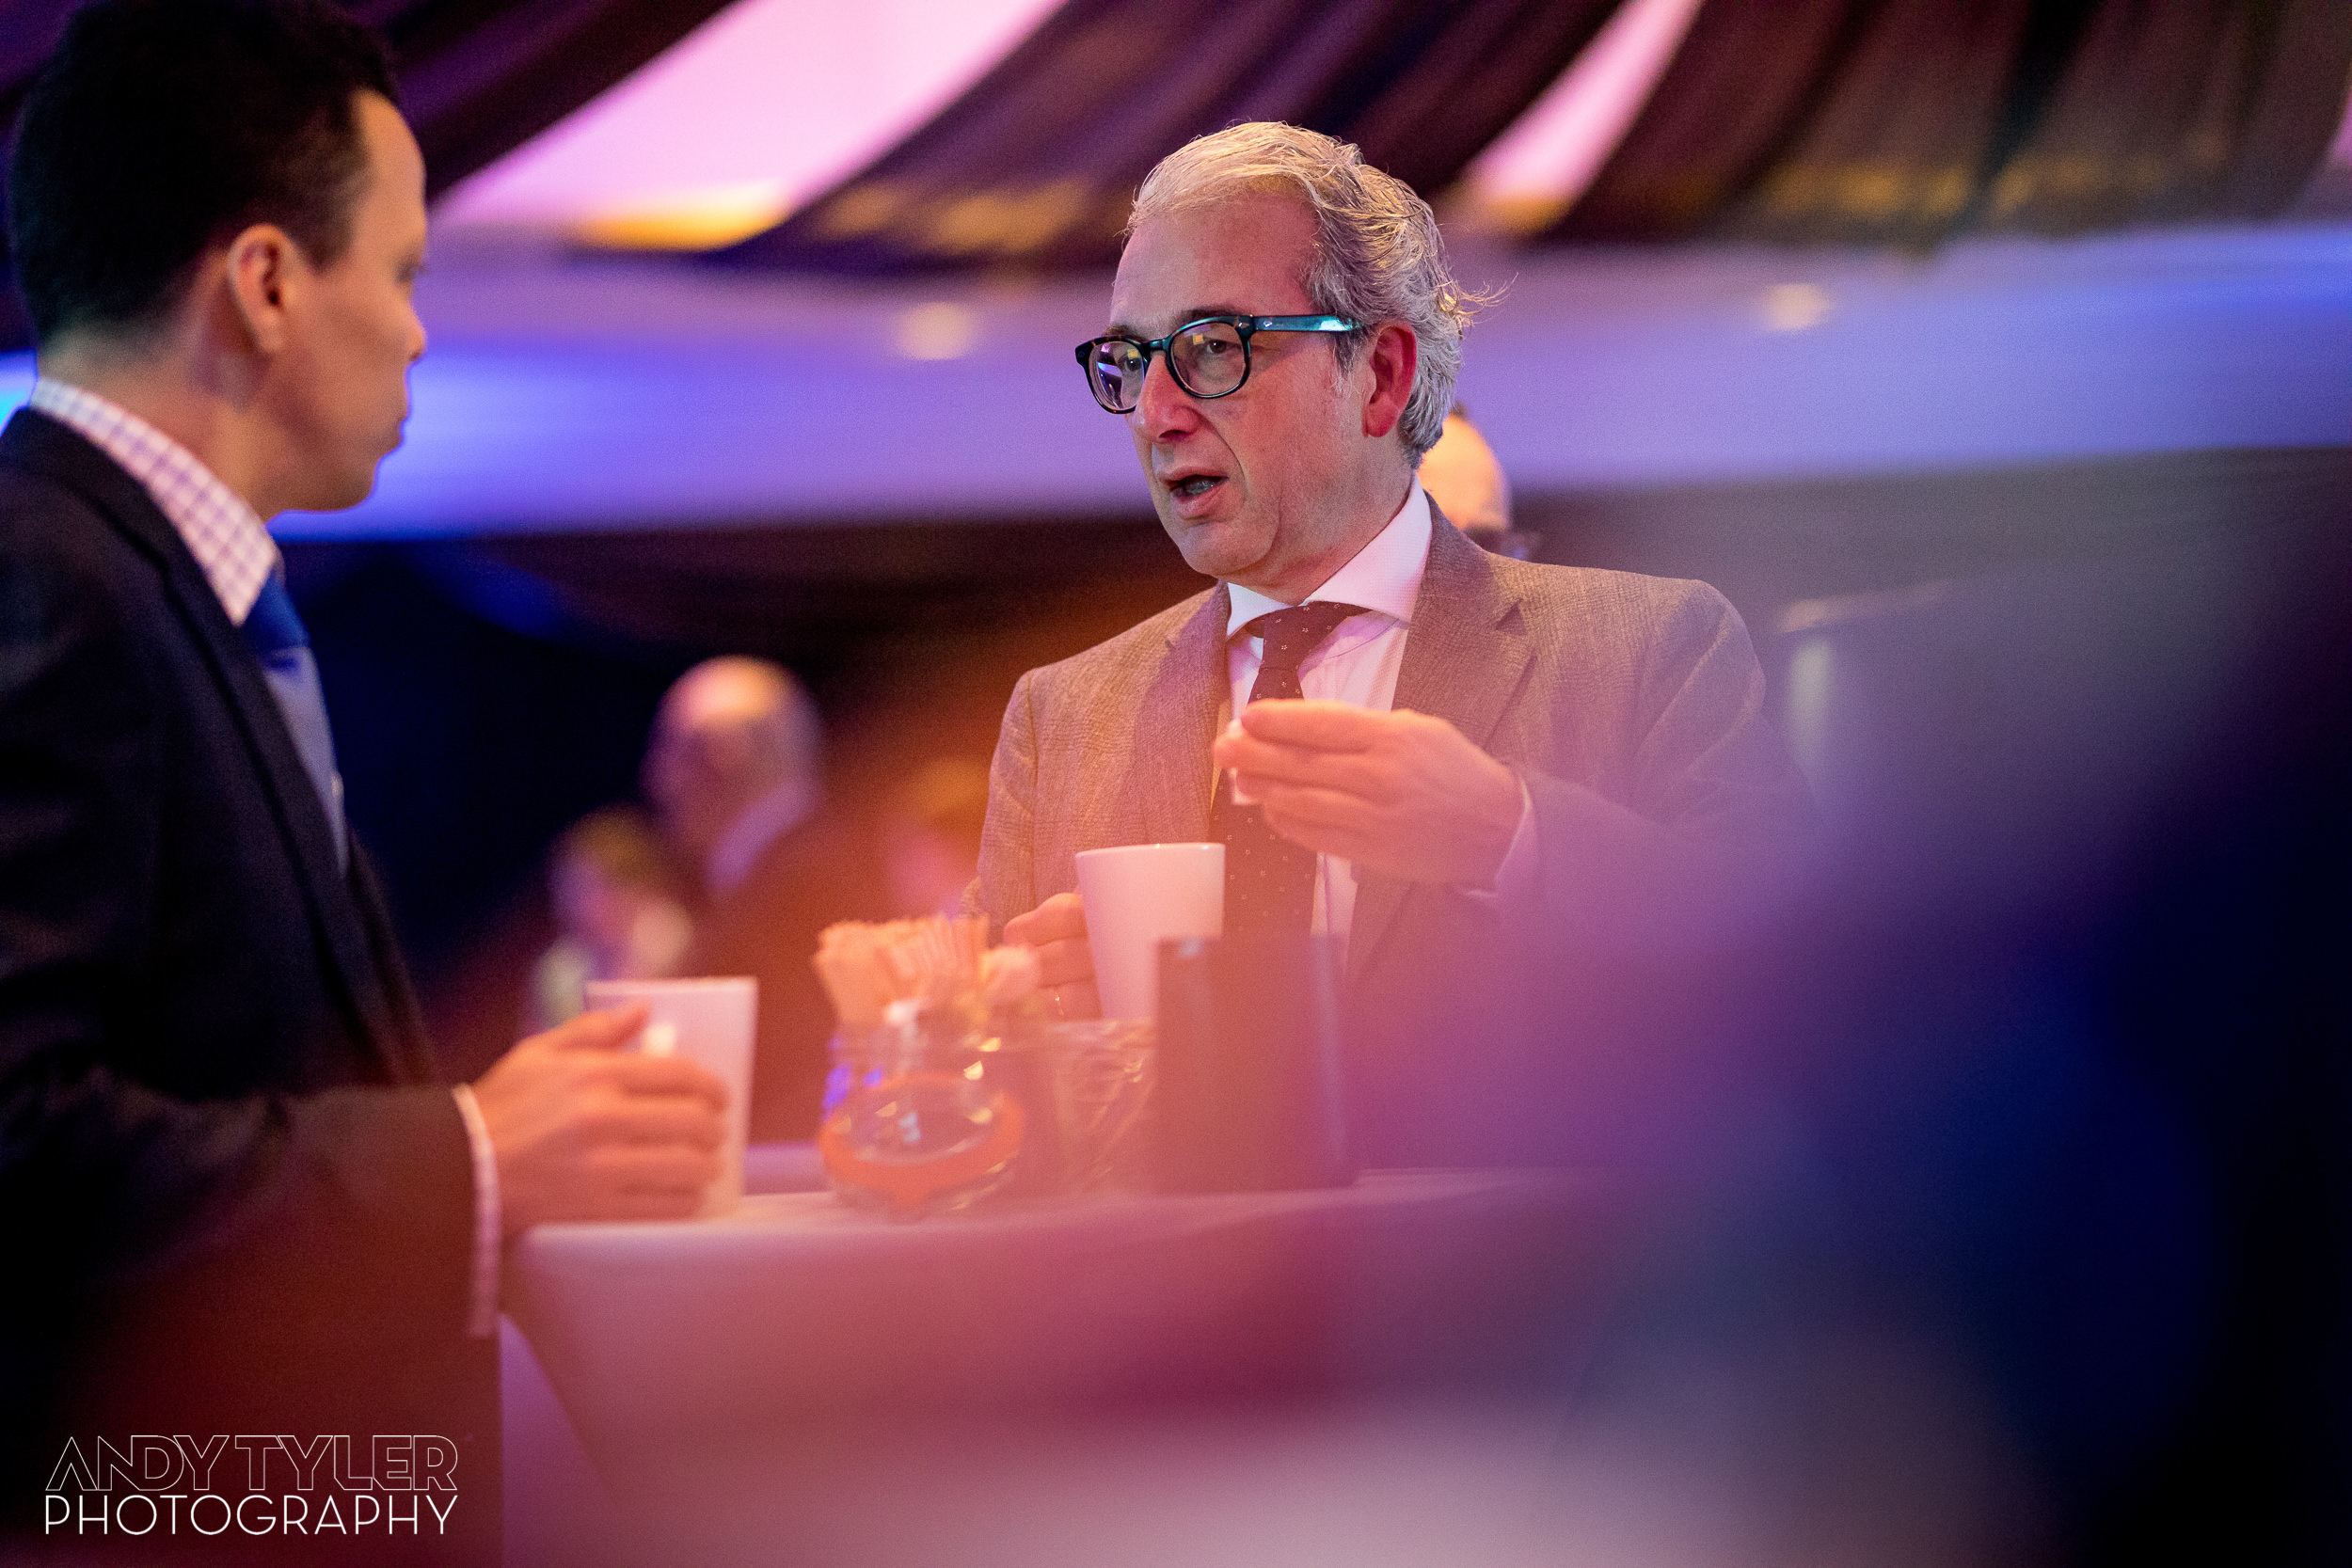 Andy_Tyler_Photography_Business_Conference_004_Andy_Tyler_Photography_029_5DA_0131.jpg